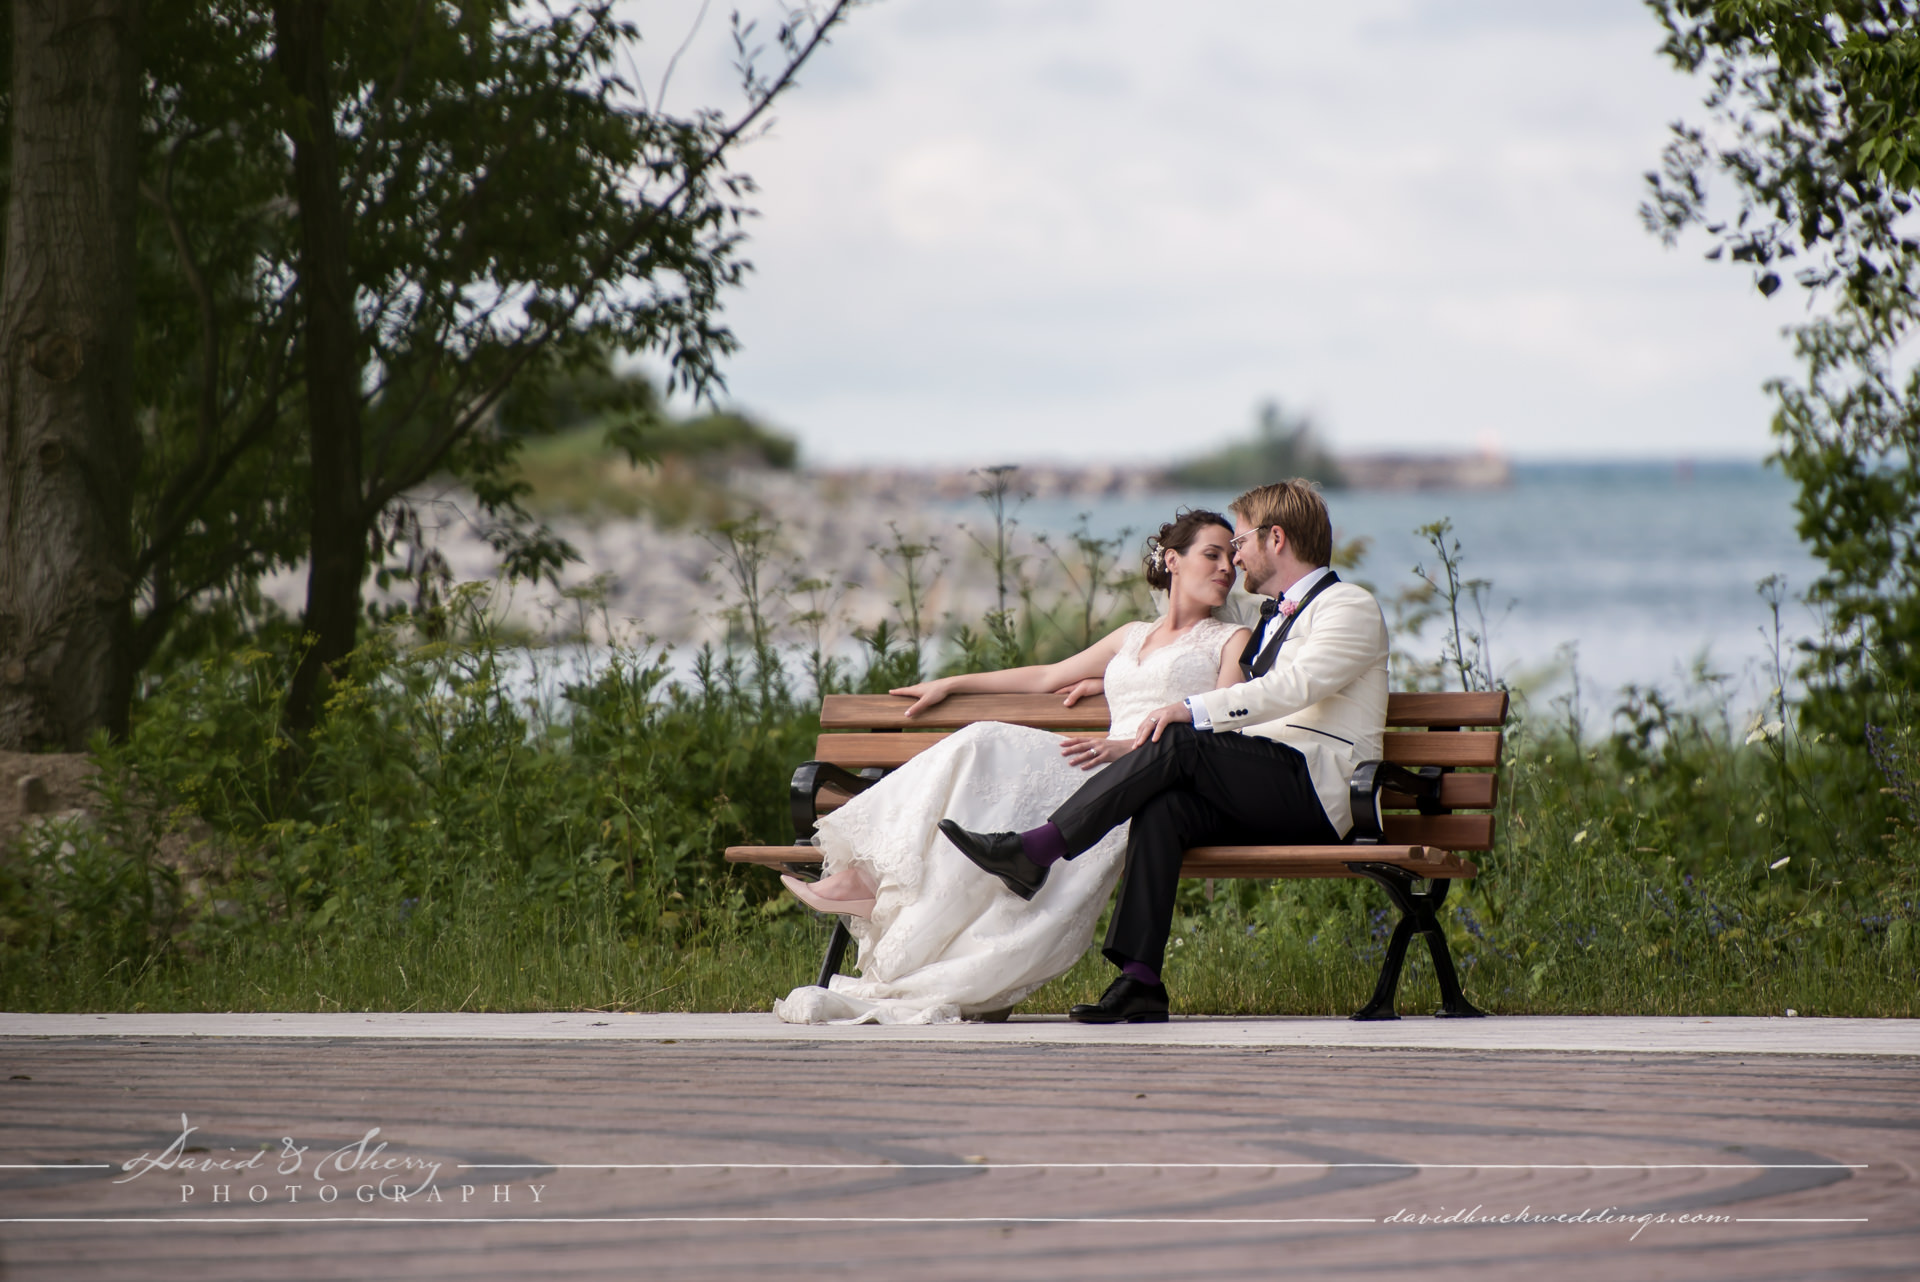 Craigleith_Ski_Club_Wedding_025